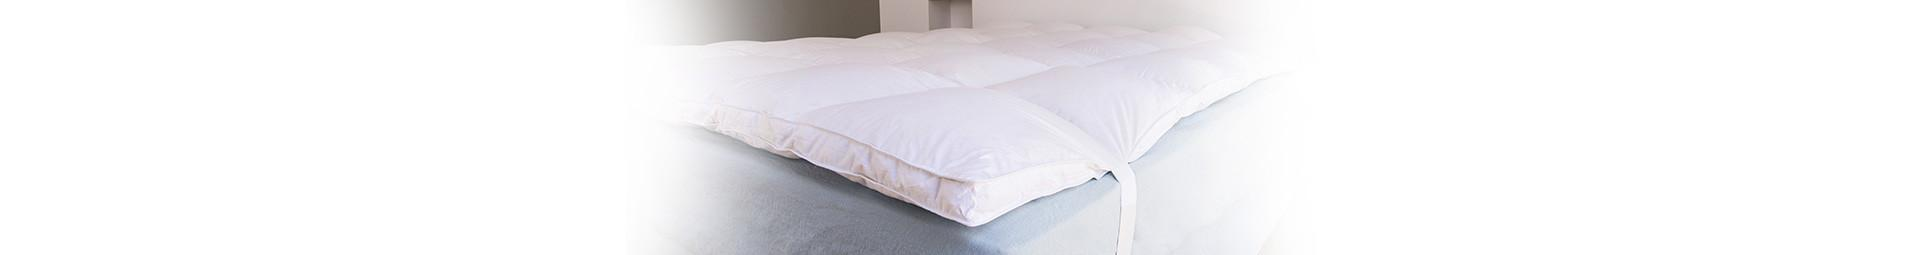 Medium firmness mattress toppers, made in France | Pyrenex